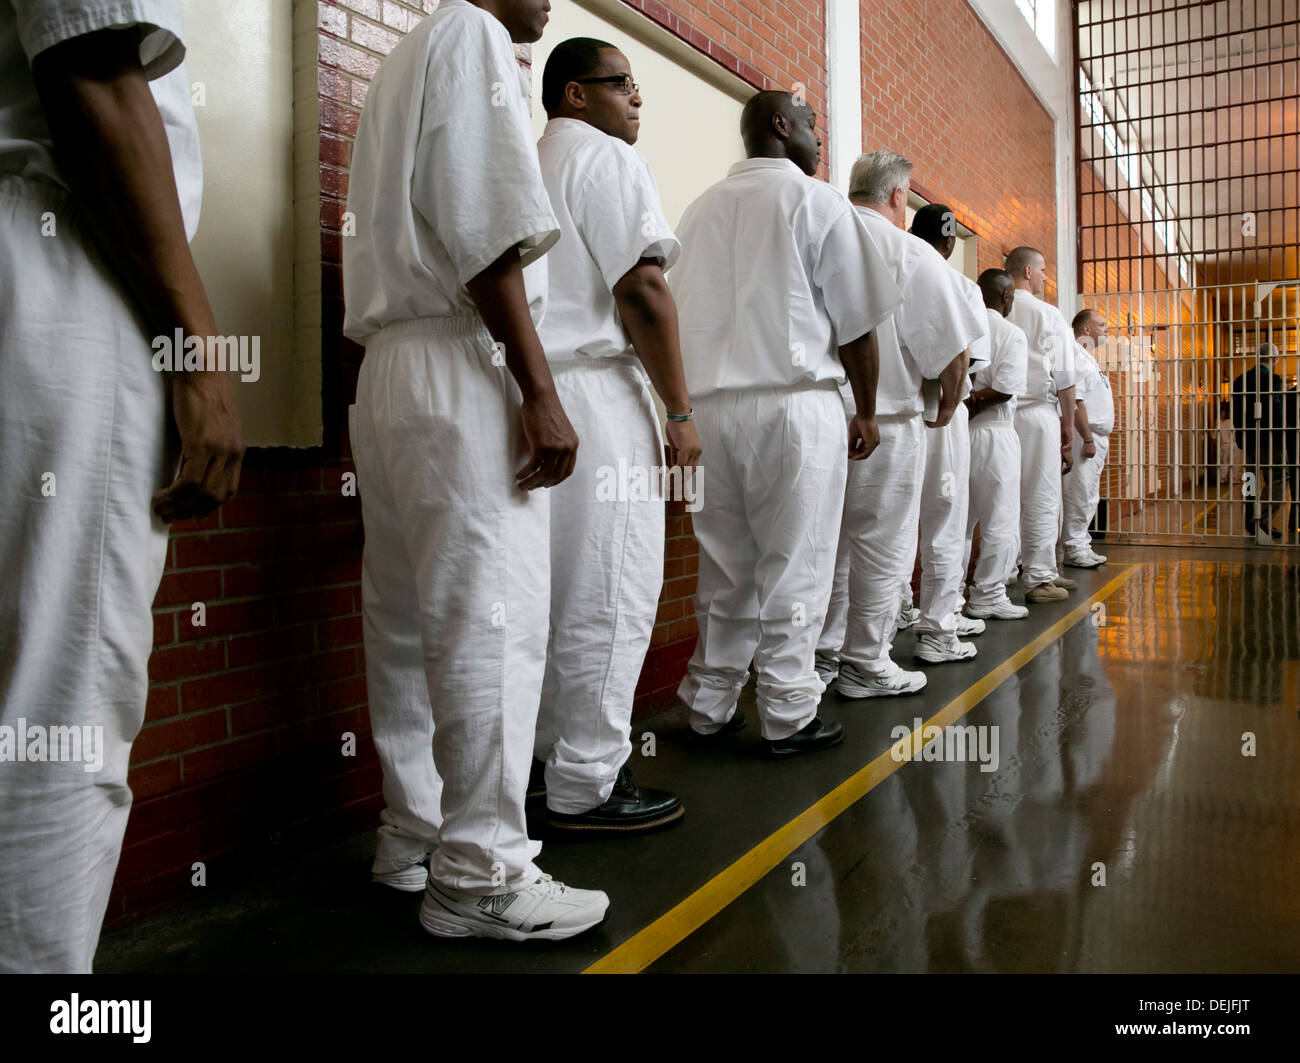 football teams for the prison inmates And the labor of these inmates is used directly to offset the enormous costs of florida's enormous prison system as of 2014, florida's prison population was just over 100,000 florida has one of the largest incarceration rates in the united states, and the prison population is highly disproportionate in terms of race.